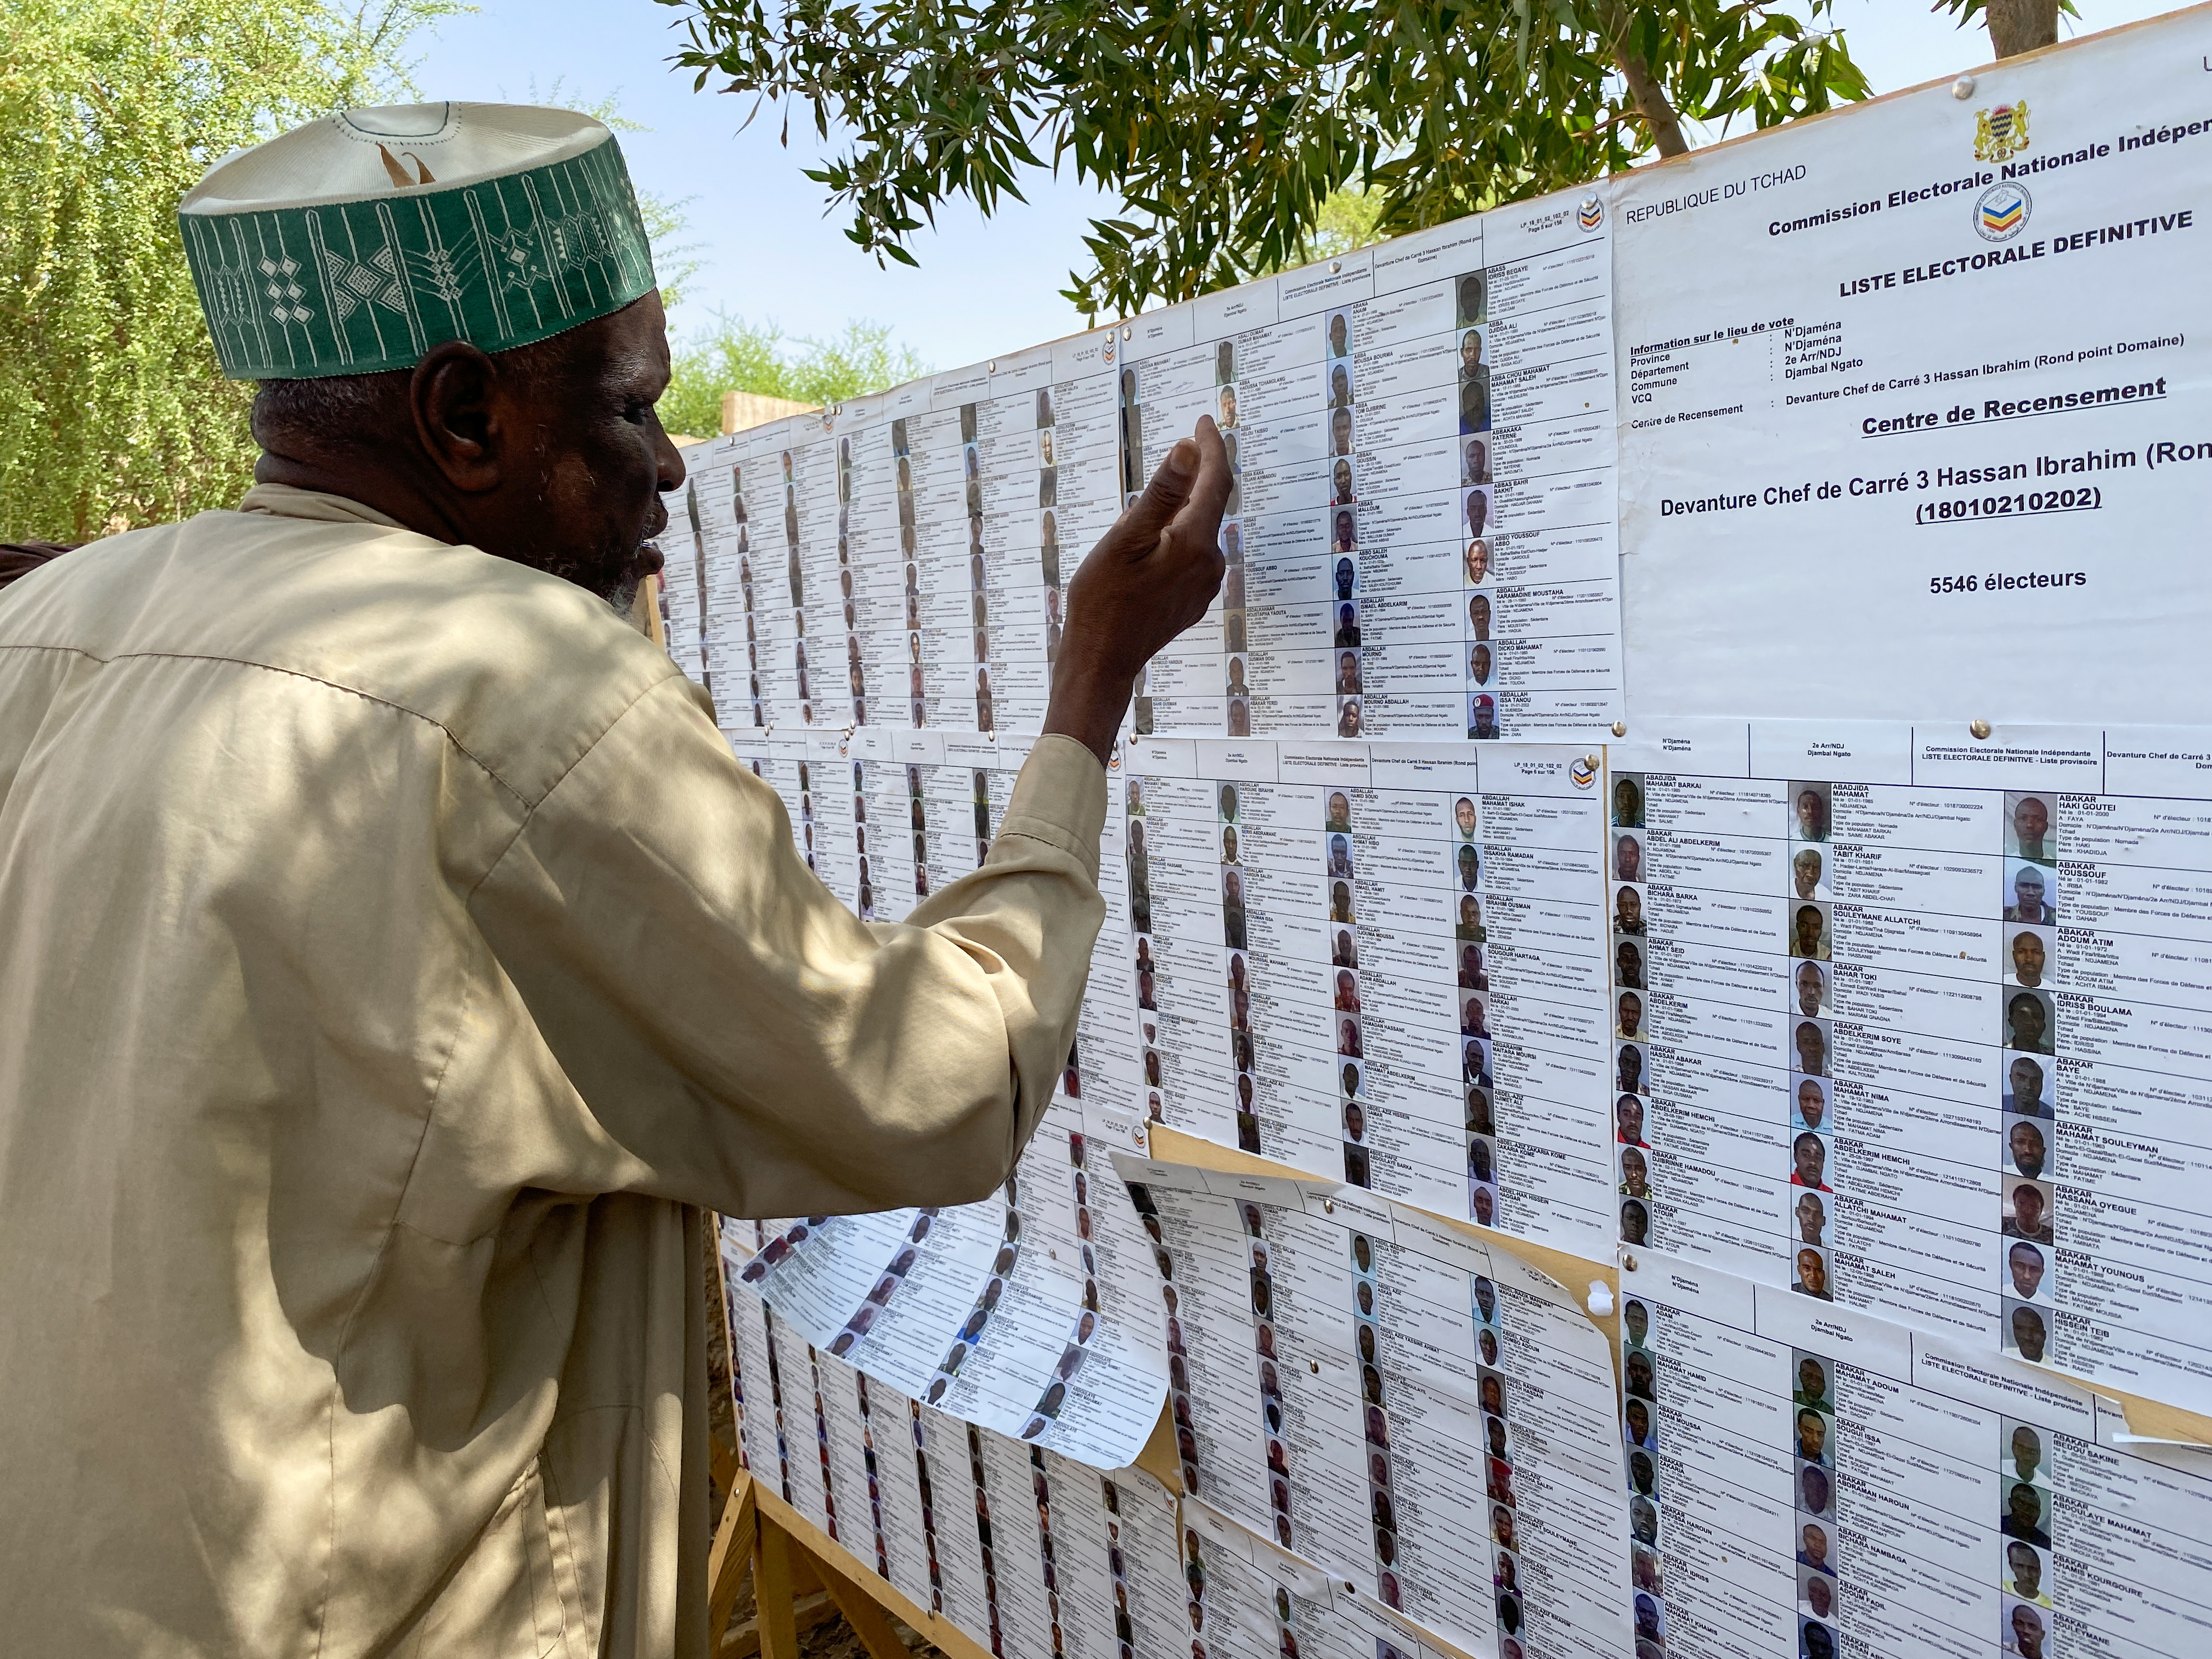 A man searches for his name on a registration list at a polling station during the presidential election in N'Djamena, Chad April 11, 2021. REUTERS/ Media Coulibaly